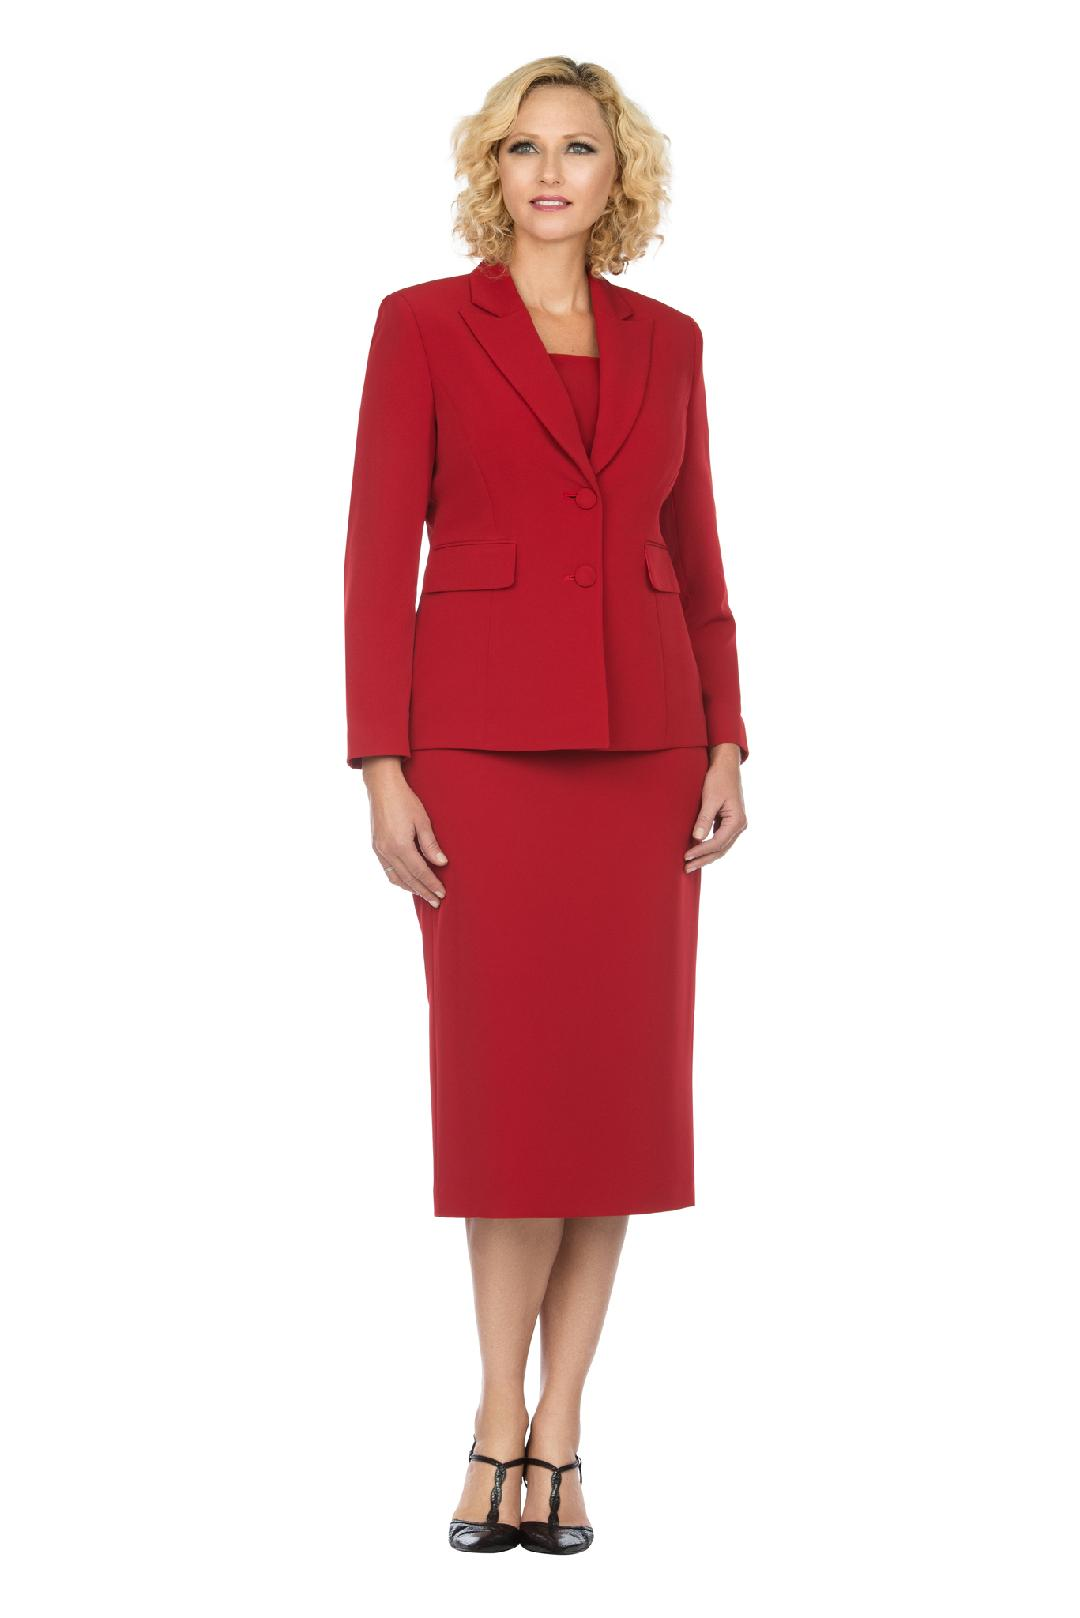 Giovanna Usher Suit S0710-Red - Church Suits For Less